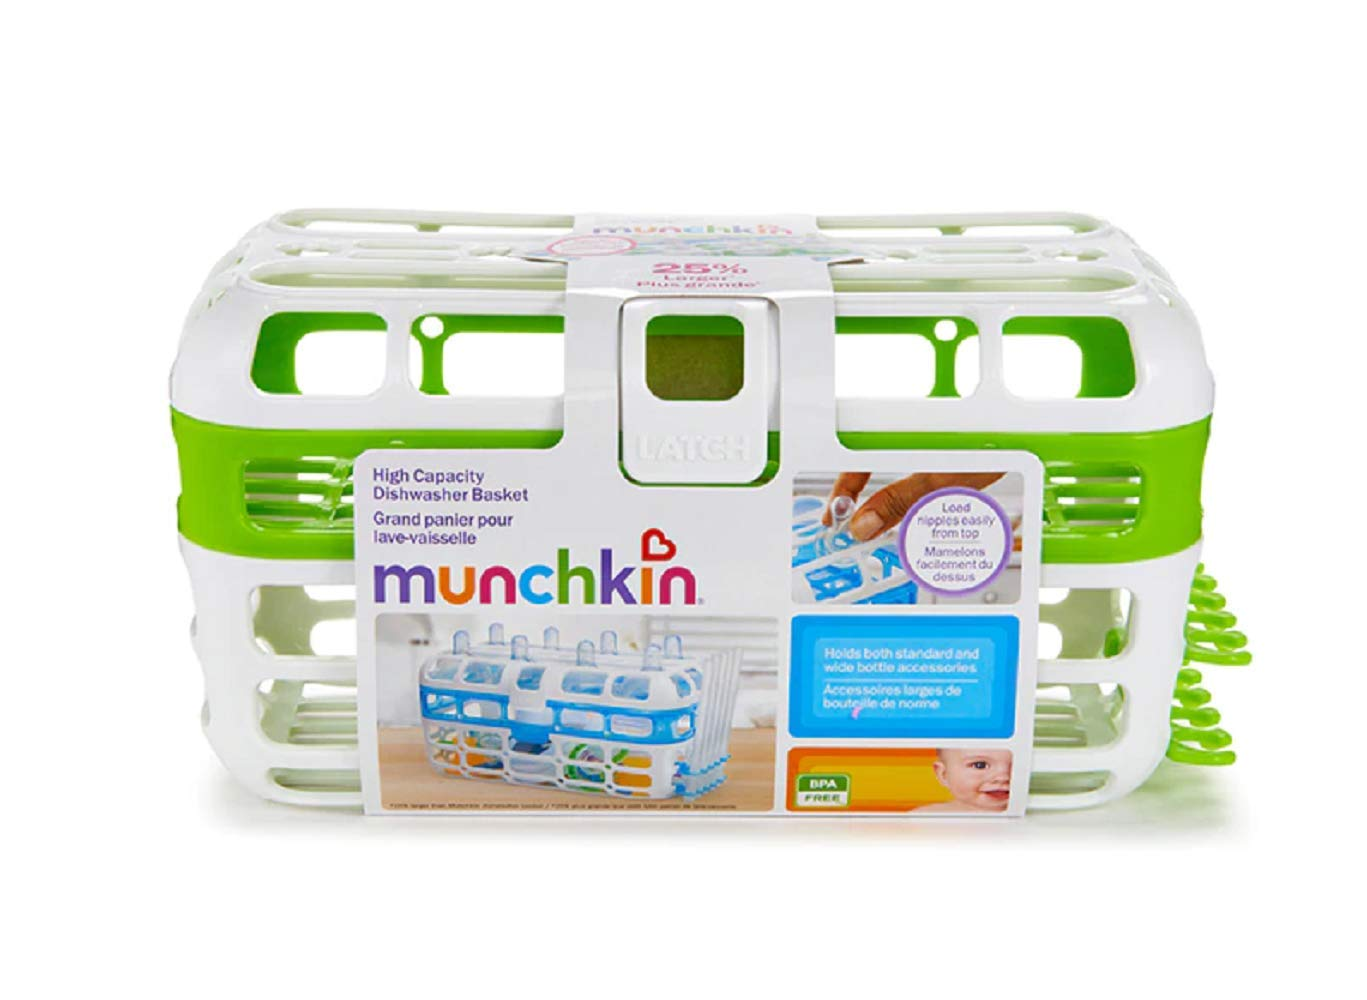 Munchkin High Capacity Dishwasher Basket, Assorted Colors by Munchkin